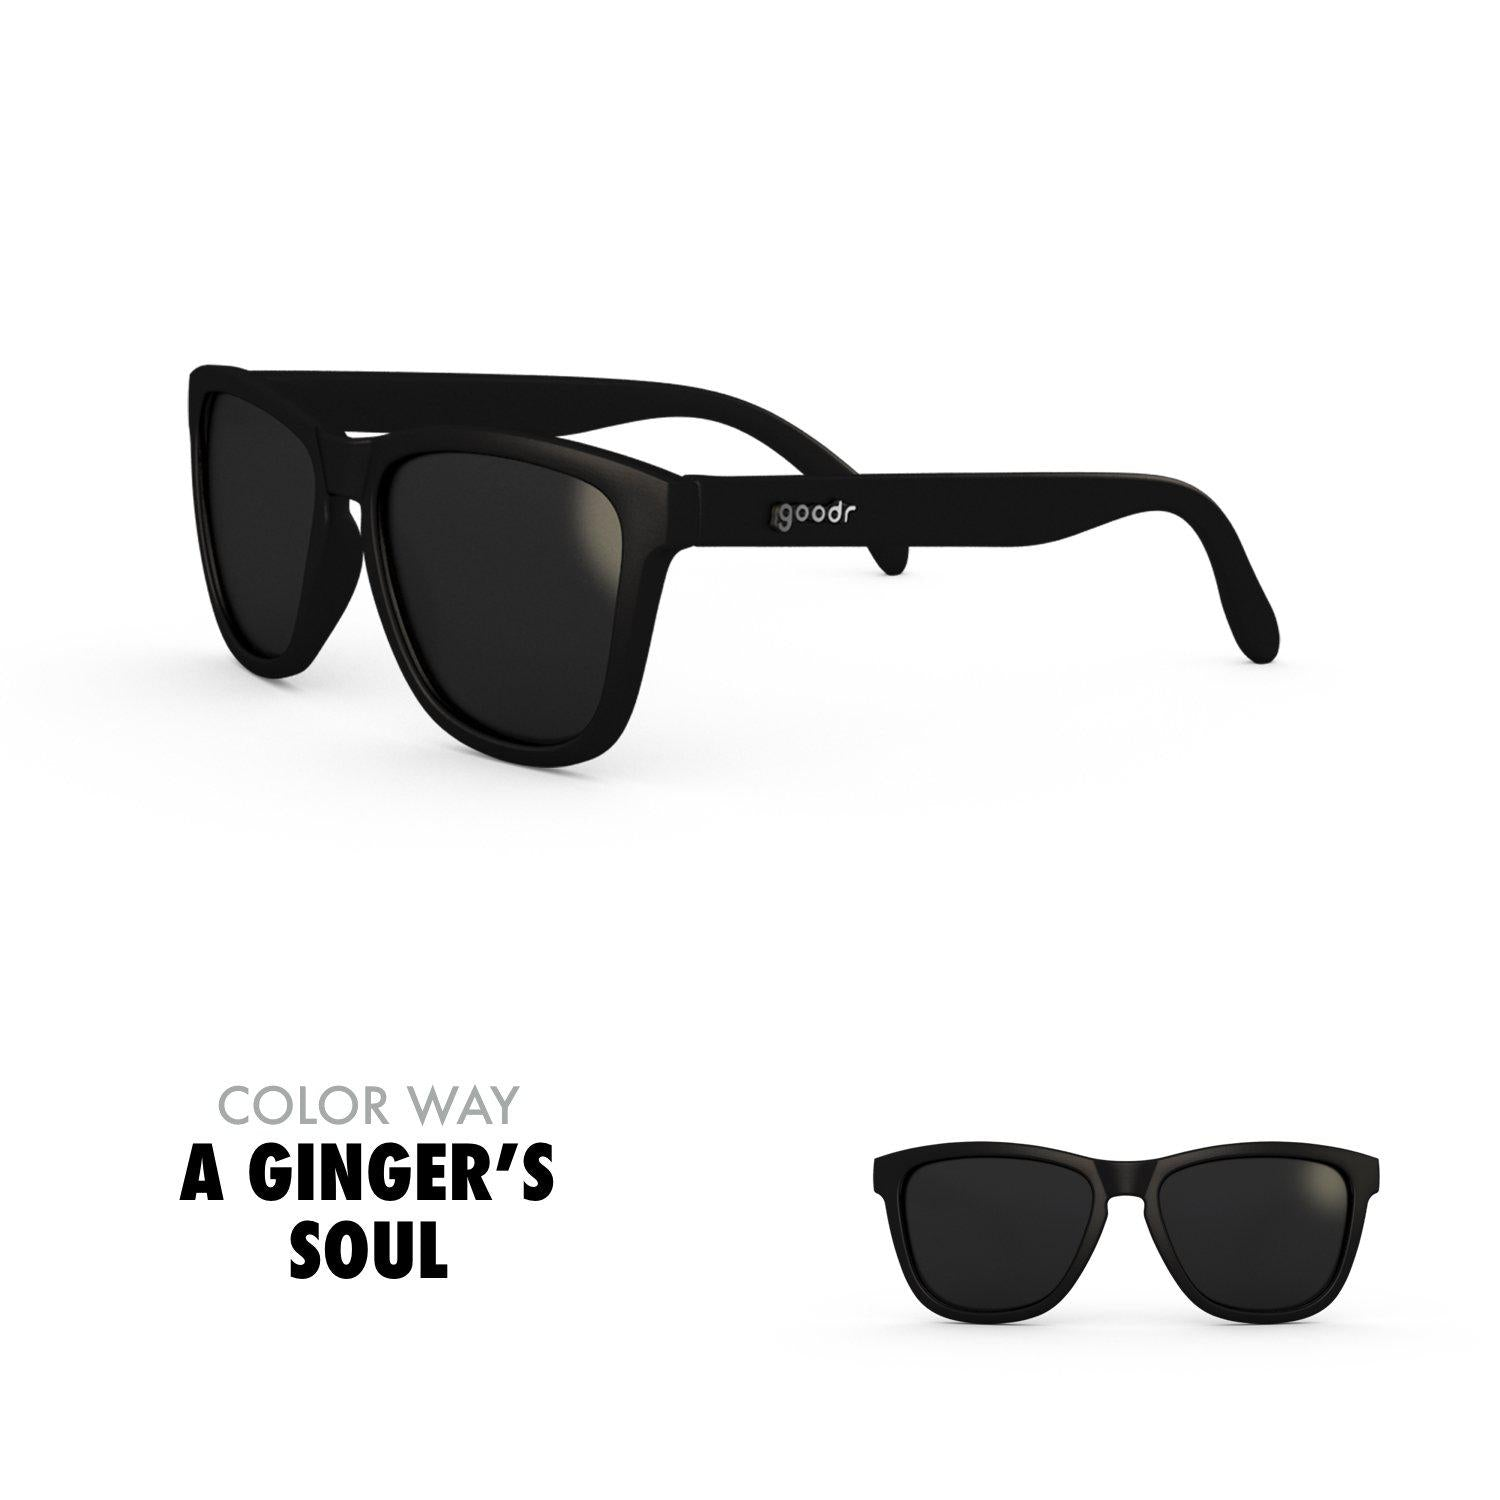 Goodr Running Sun Glasses-Clothing Accessories-Goodr-A Ginger's Soul-2 Foot Adventures